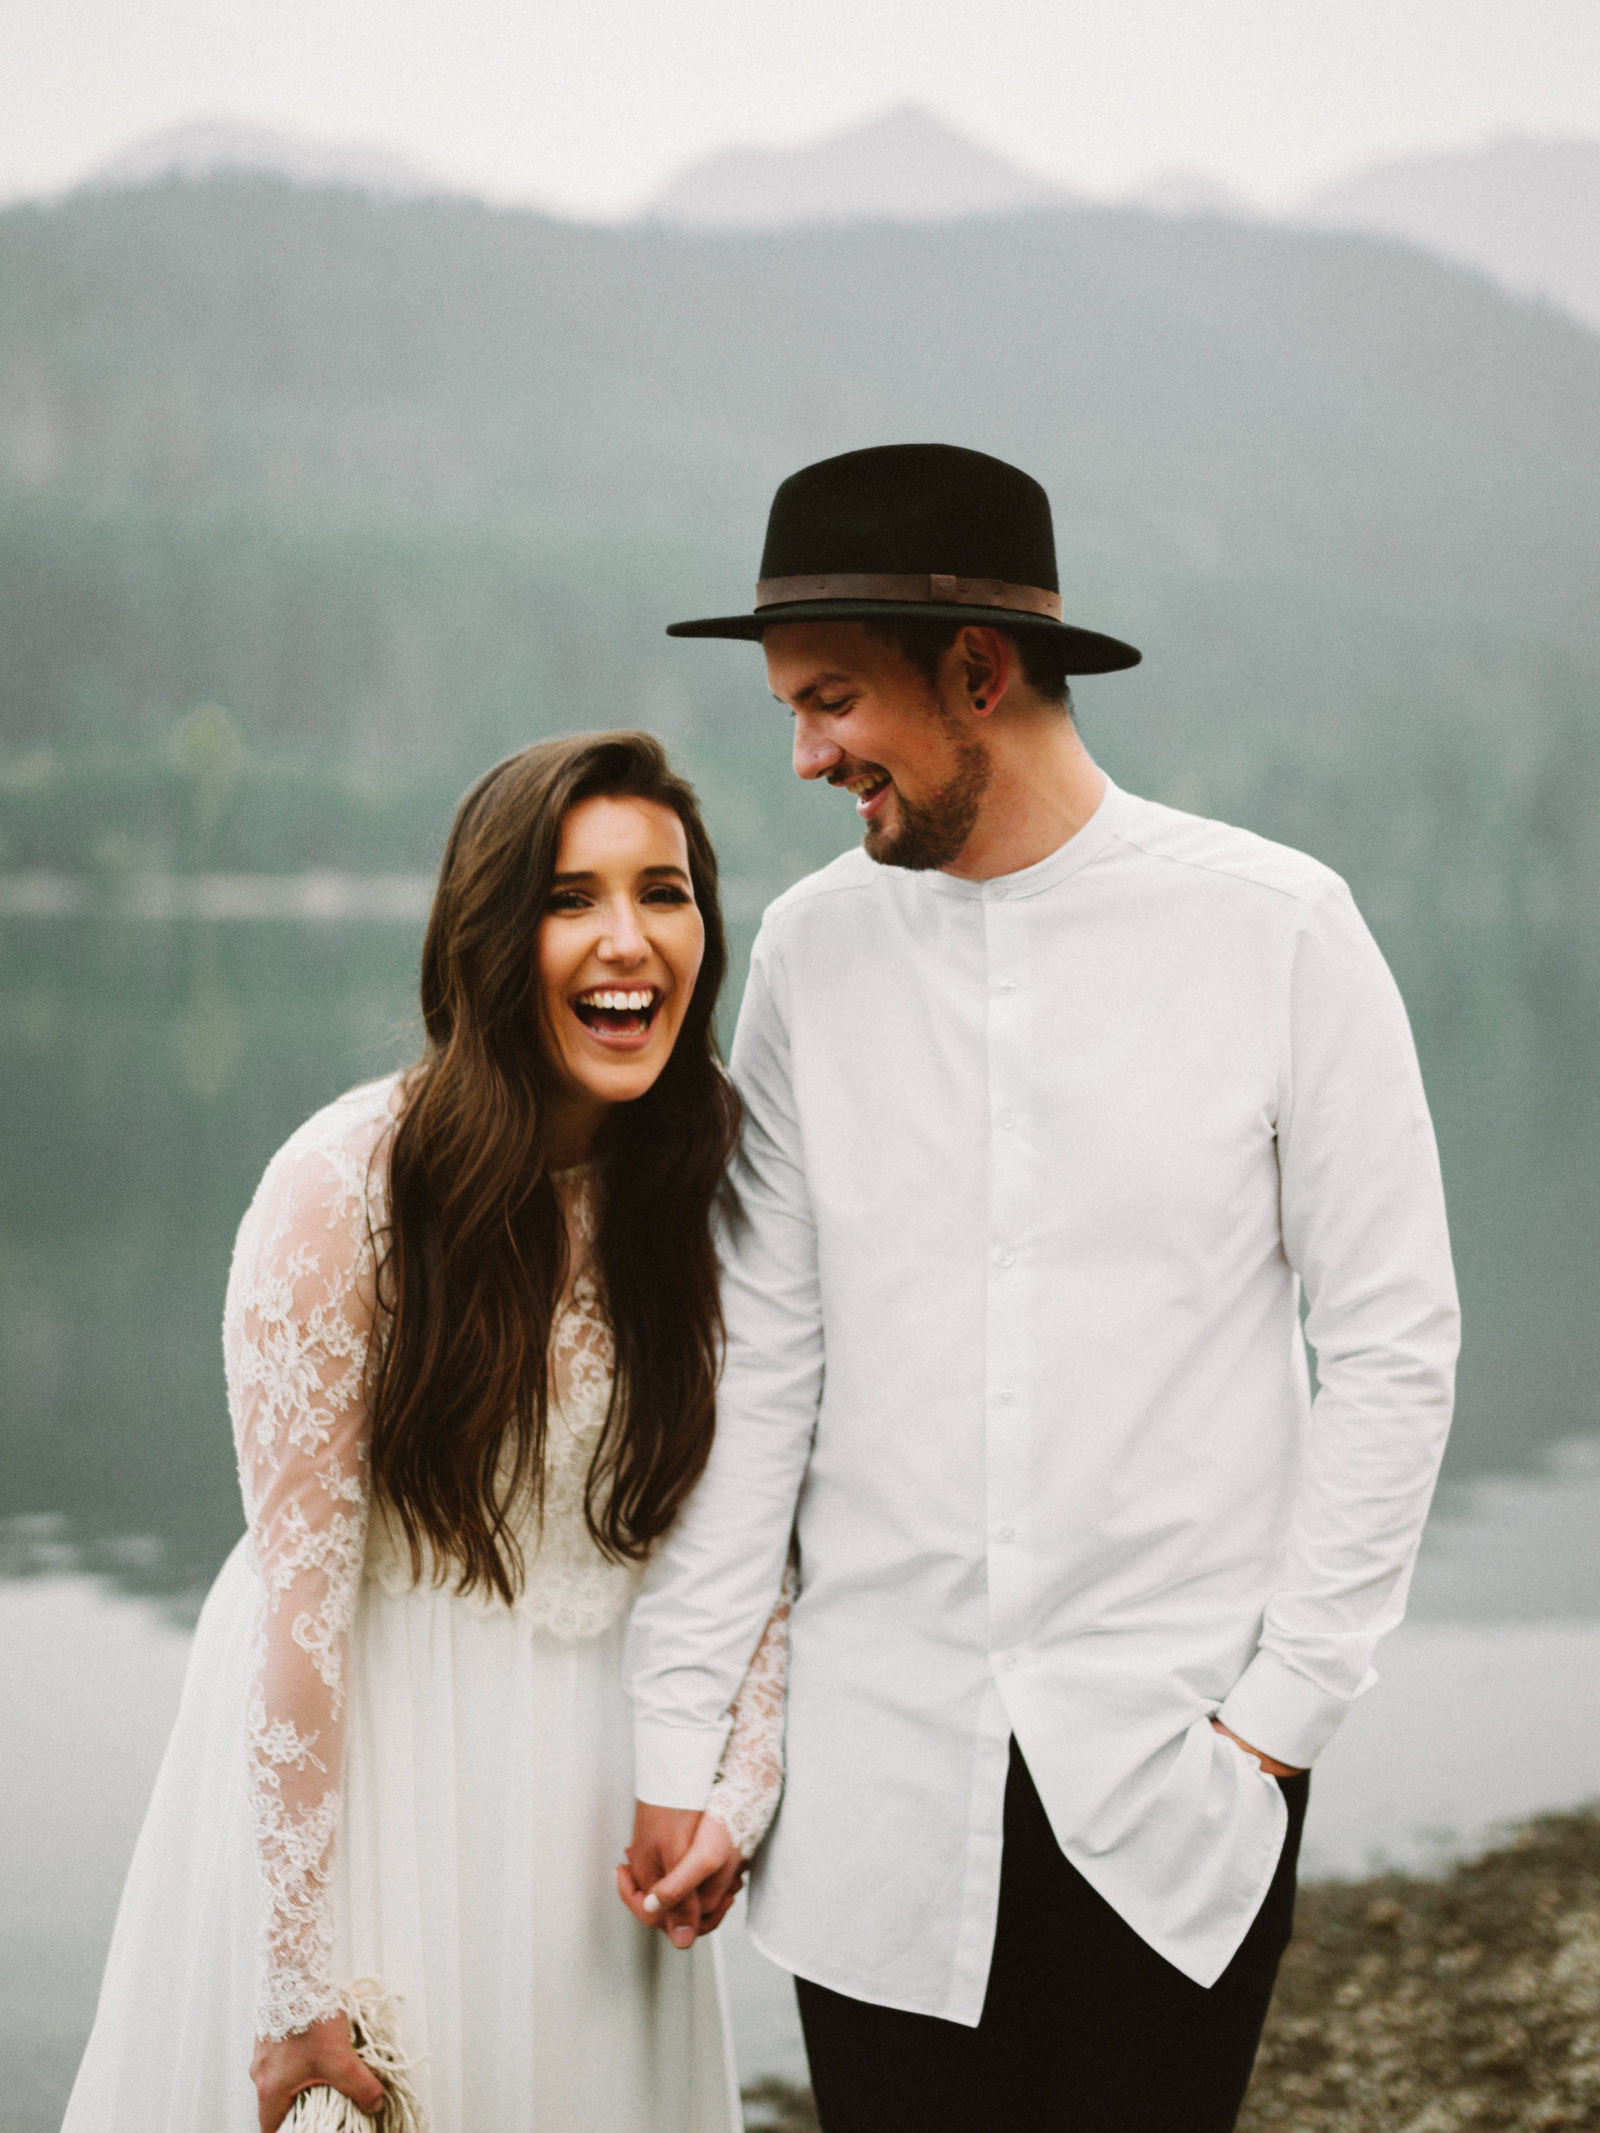 athena-and-camron-seattle-elopement-wedding-benj-haisch-rattlesnake-lake-christian-couple-goals78